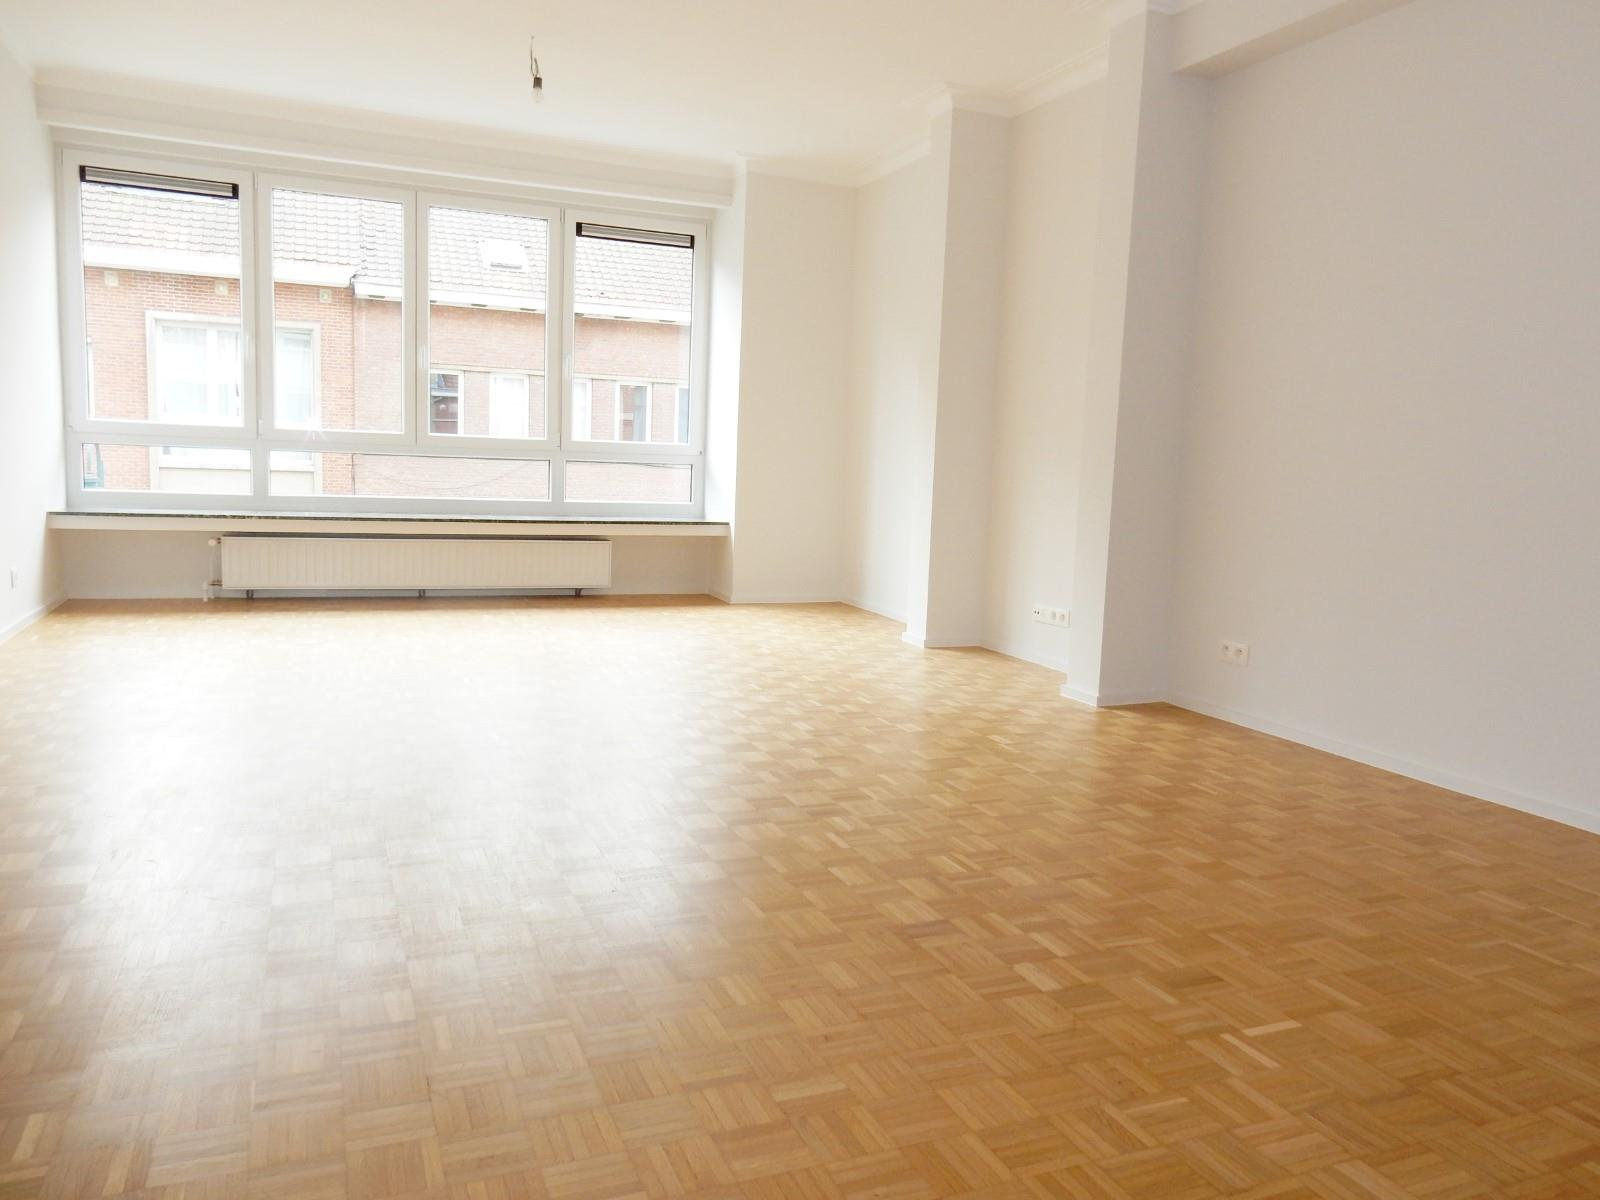 Appartement exceptionnel - Uccle - #3601428-1